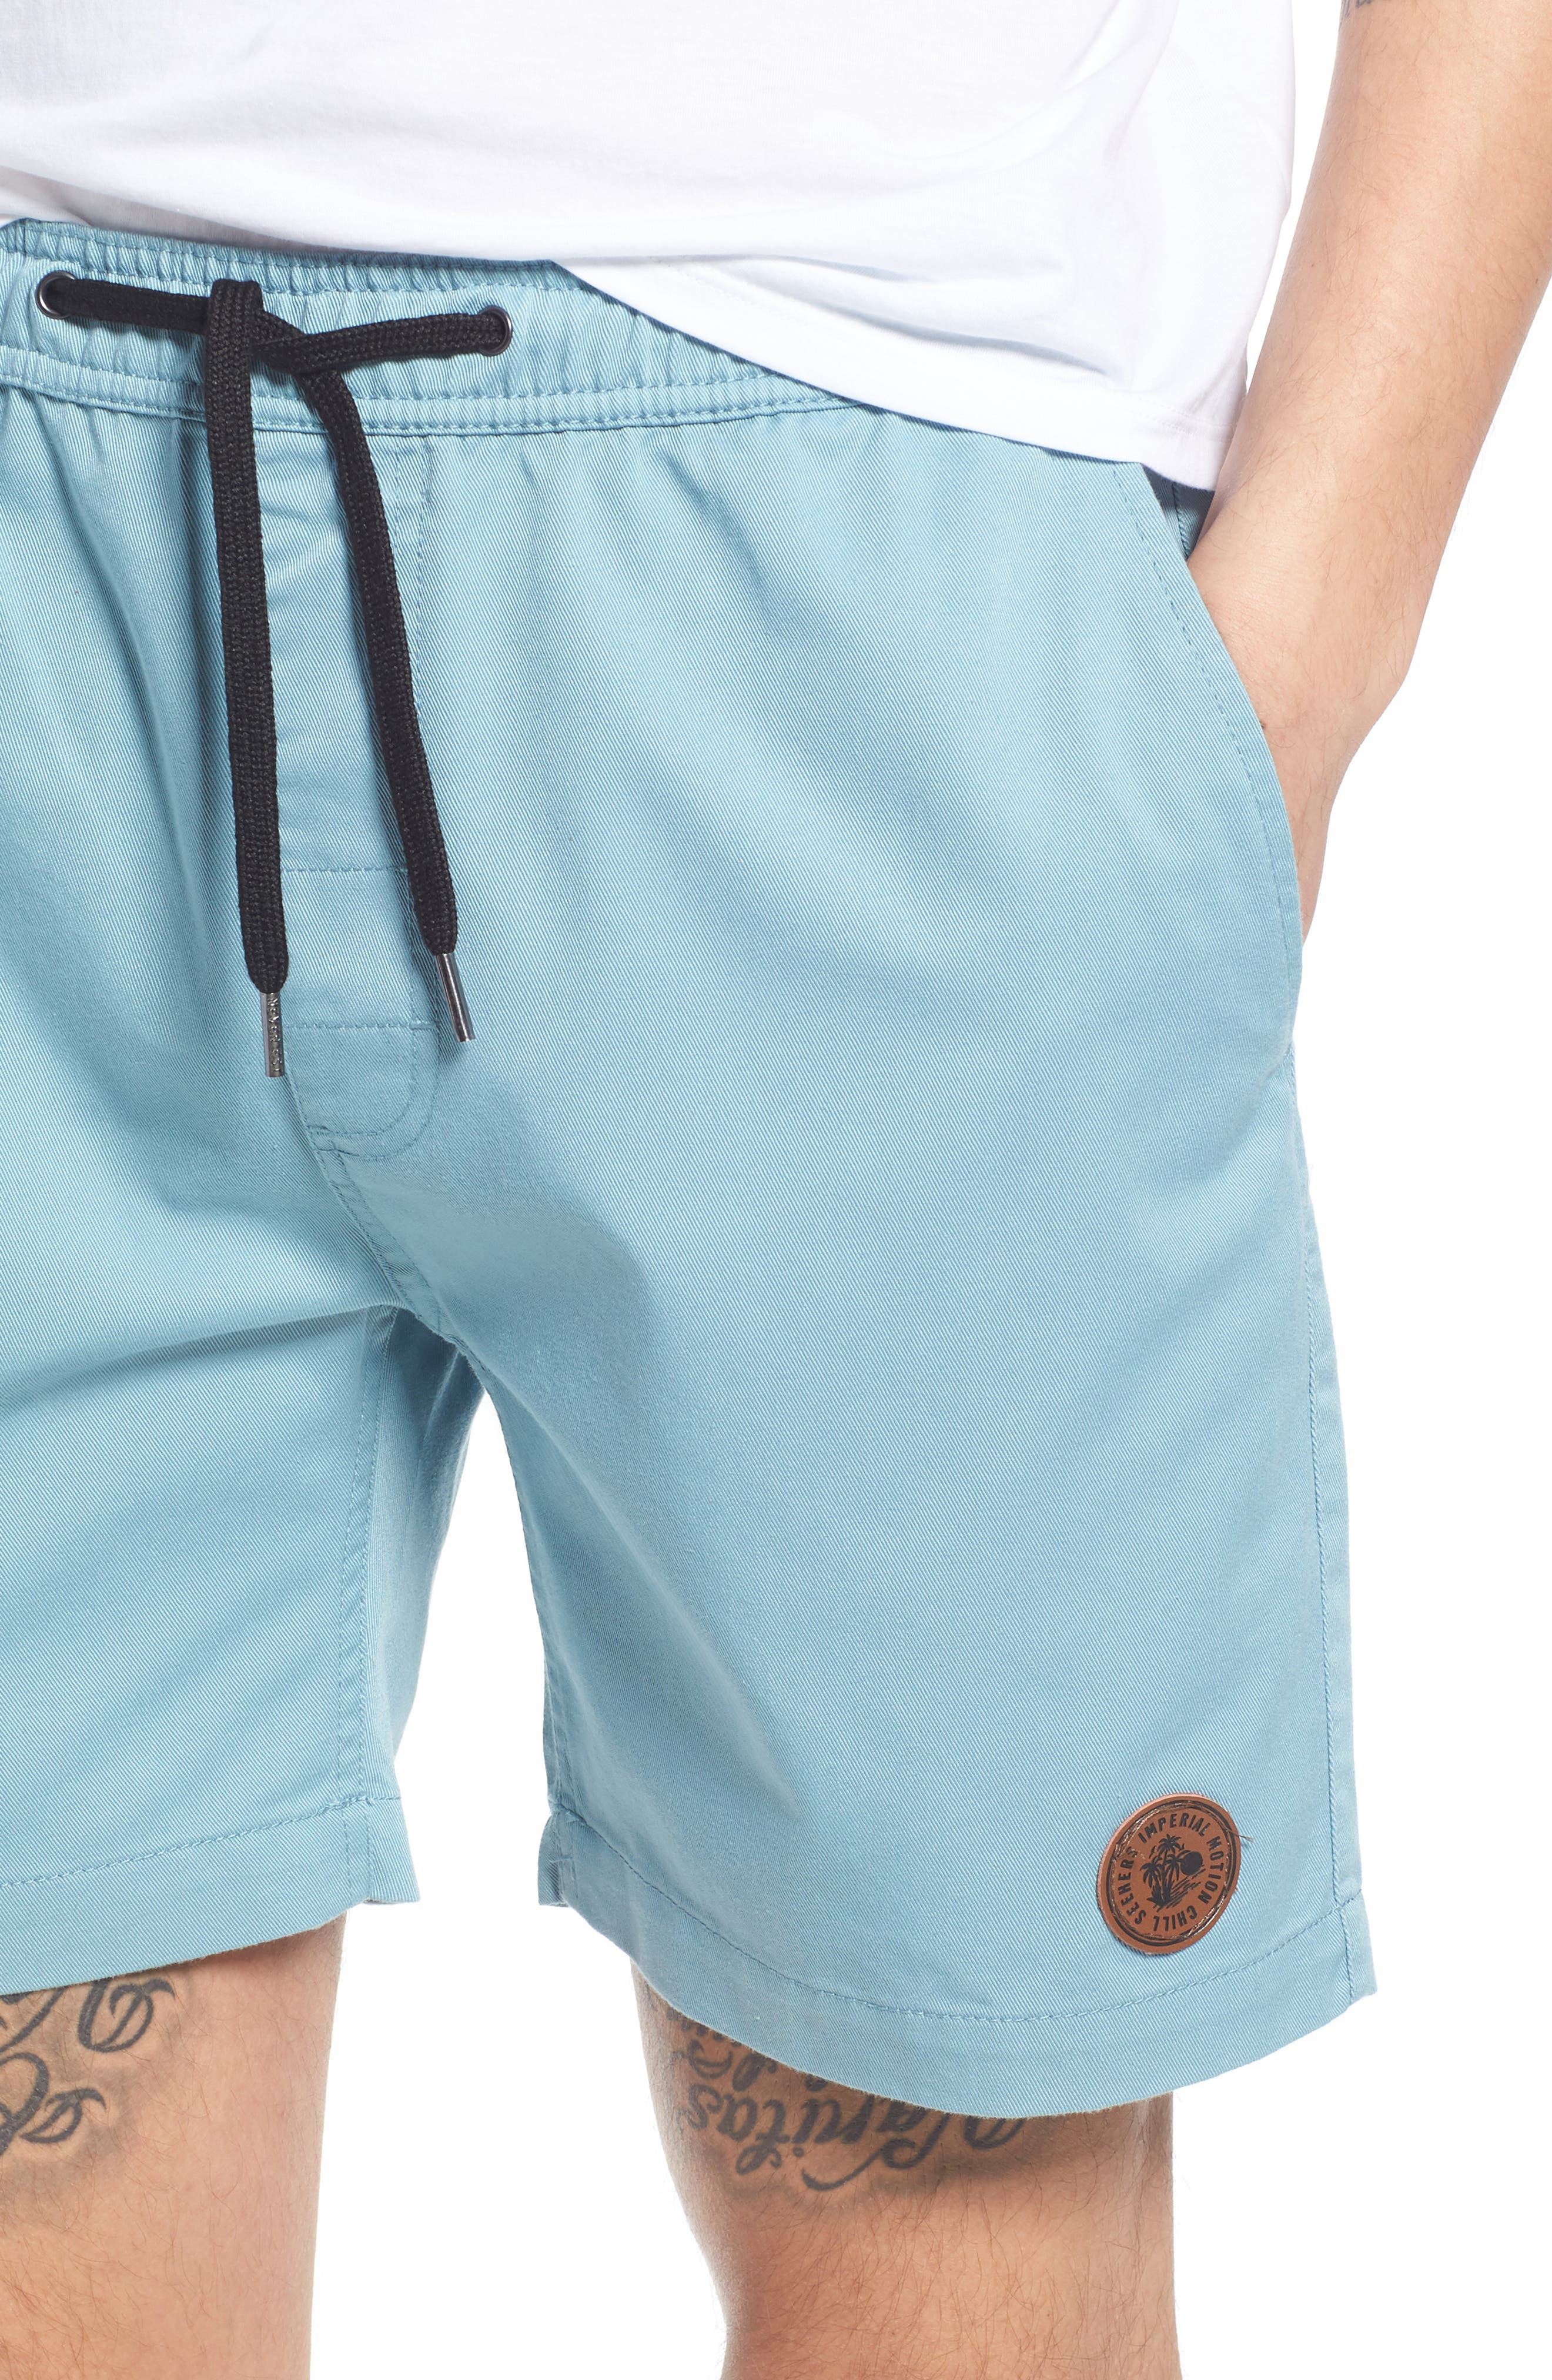 Seeker Shorts,                             Alternate thumbnail 4, color,                             Light Blue